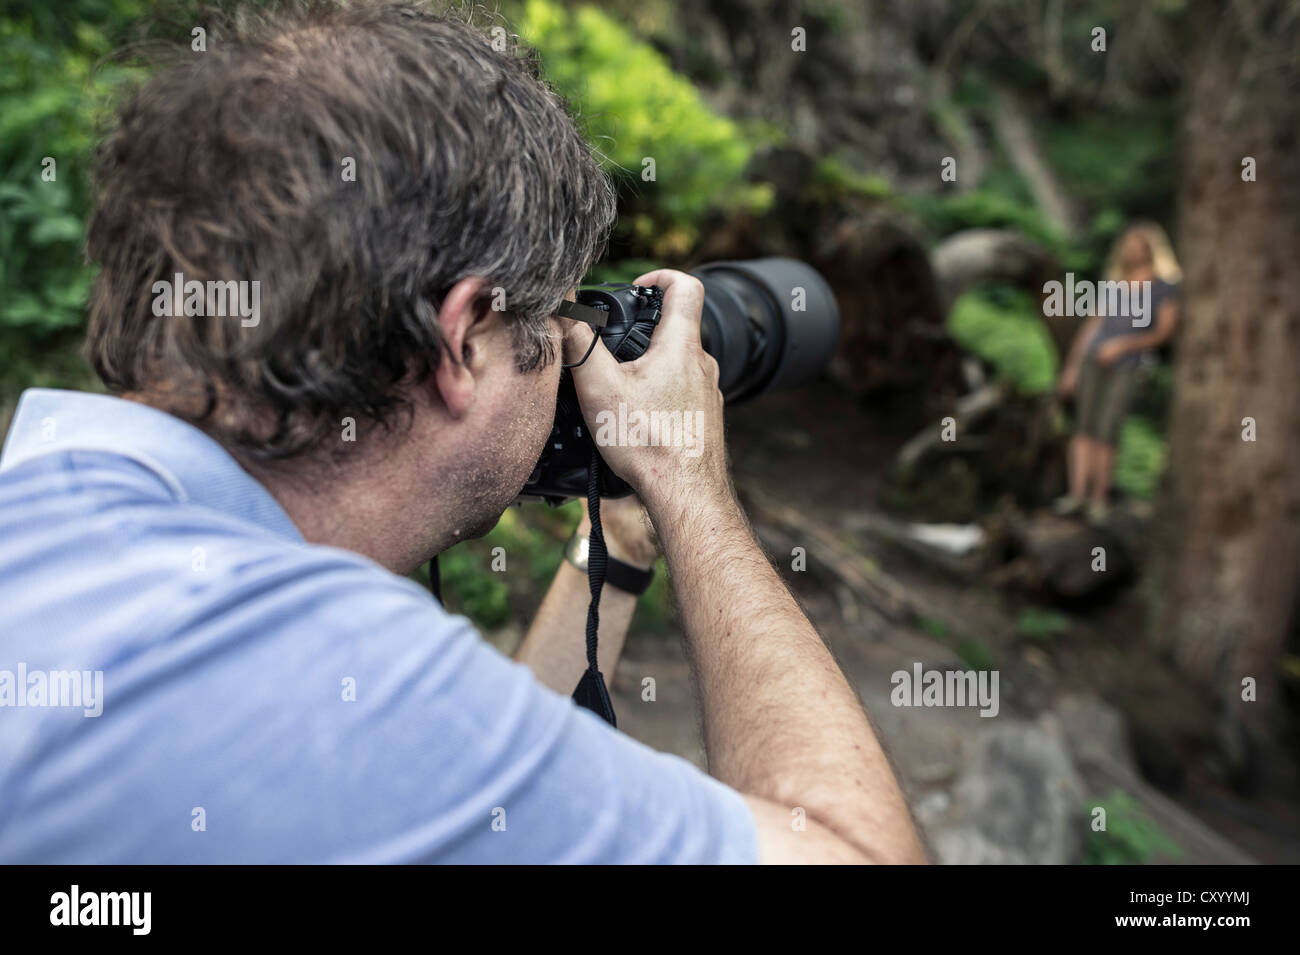 Photographer and model during a photo shoot in the woods, Stubai Valley, Tyrol, Austria, Europe - Stock Image